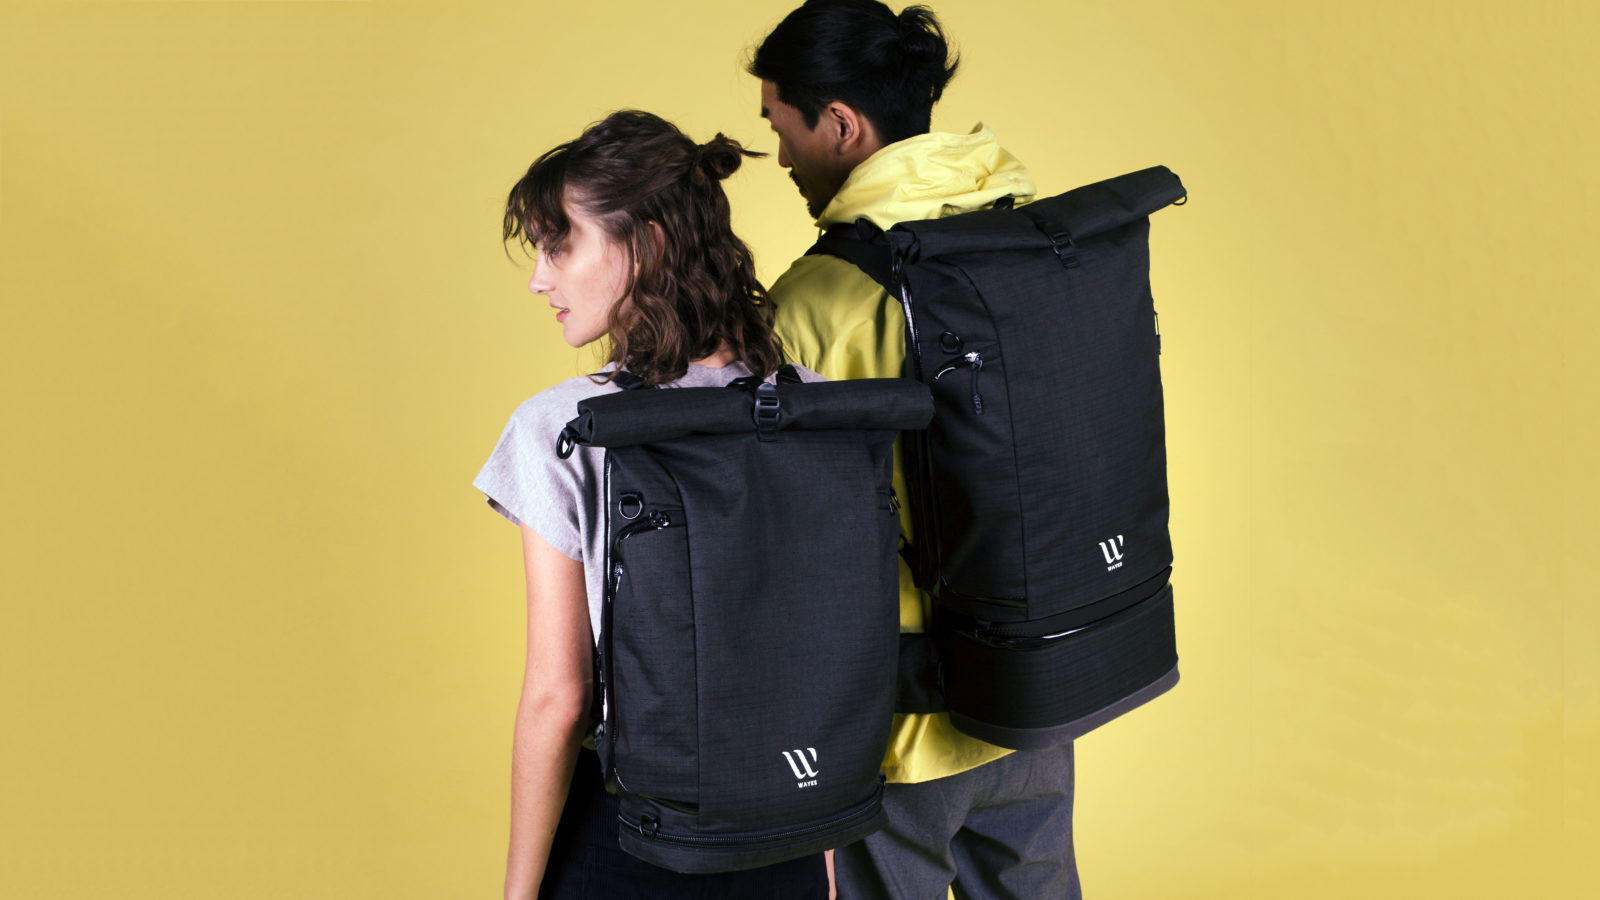 The WAYKS ONE | Modulares Backpack | Fabian und Leonie Stein | Kickstarter 2018 | GROSS∆RTIG